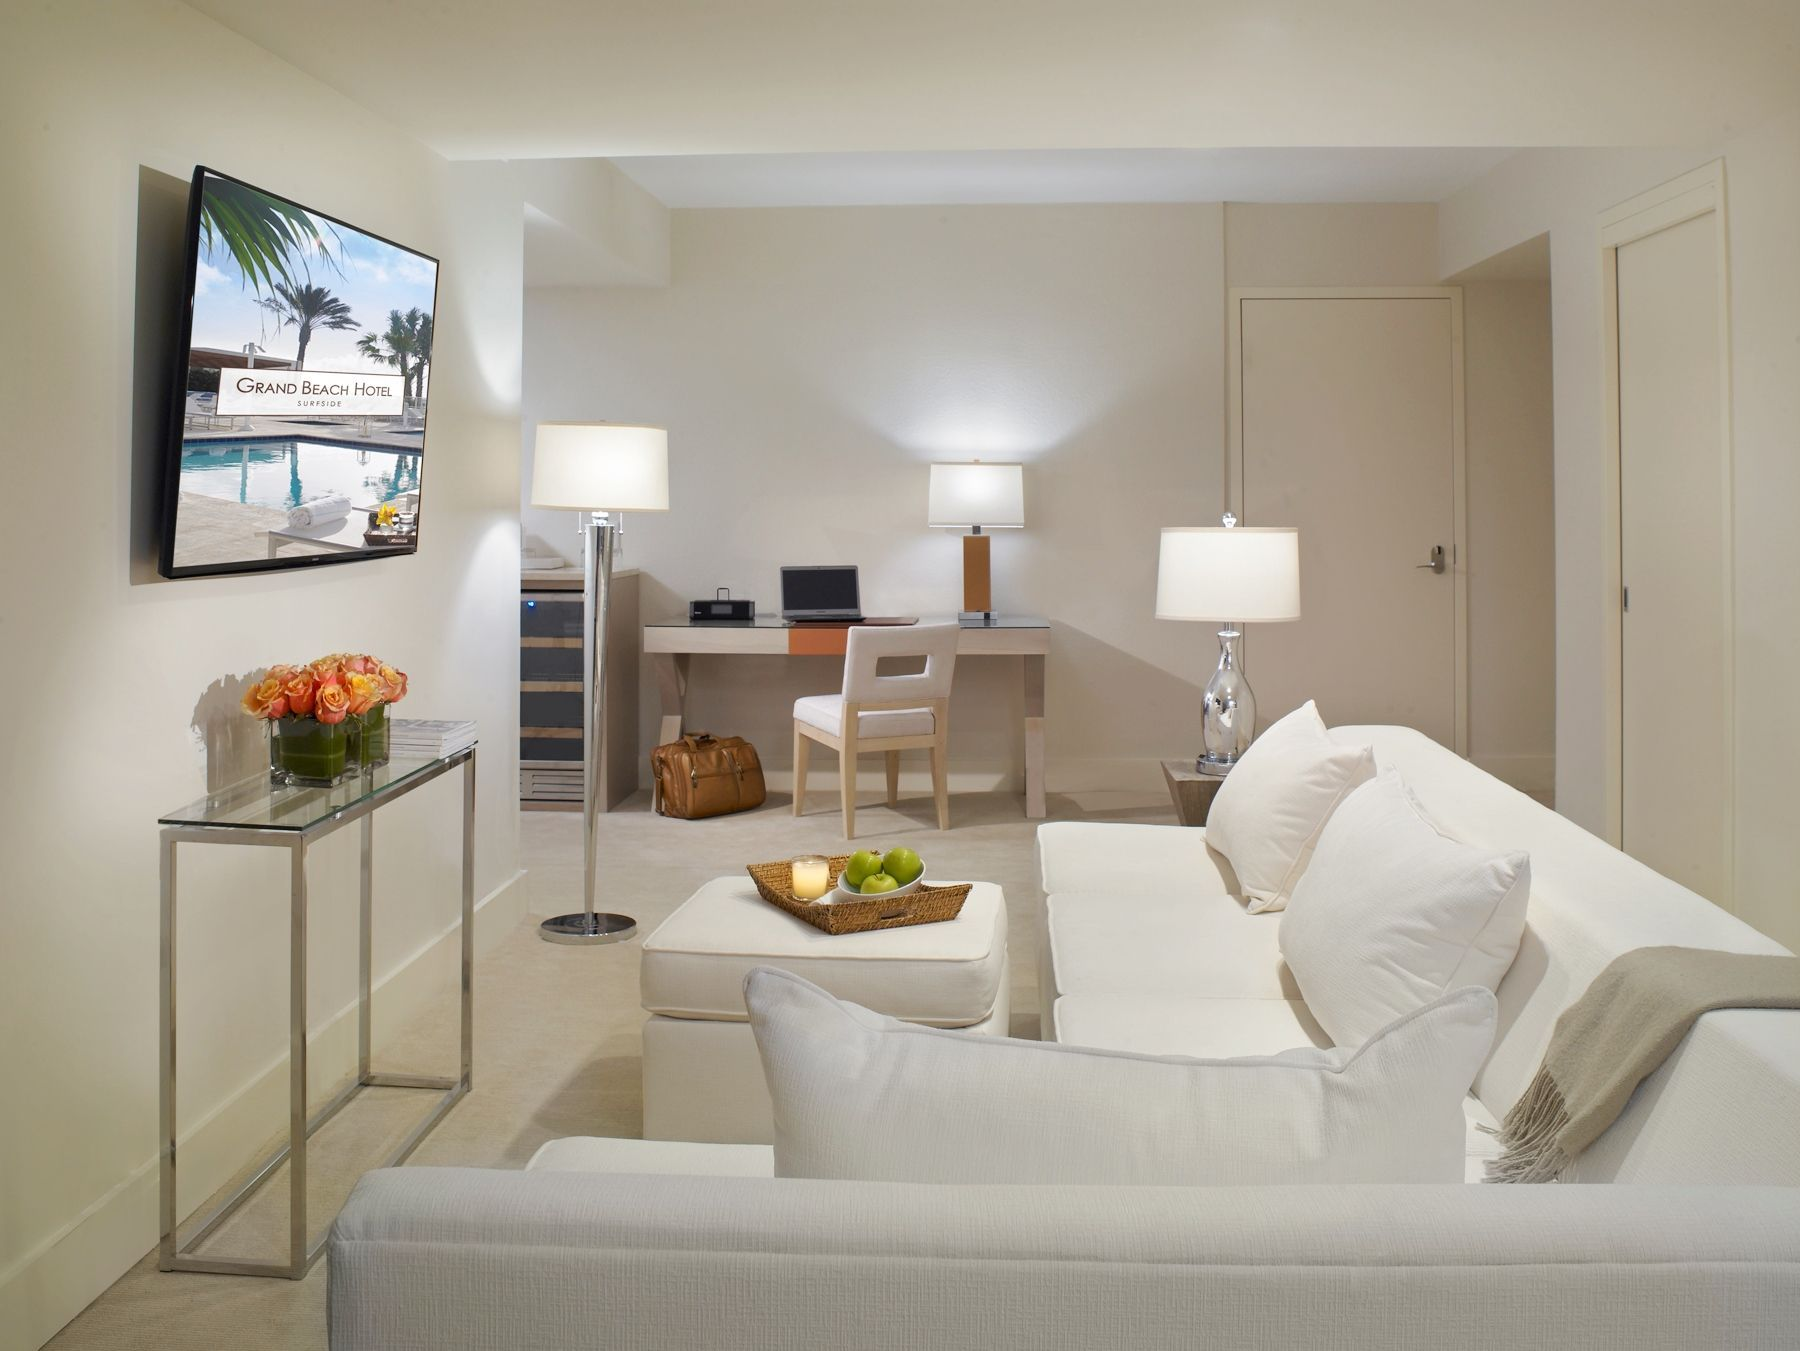 Can You Imagine Lounging In The Comfort Of Your Very Own 3 Bedroom Suite At Grandsurfsidewest Gbsmoment Grand Beach Hotel Bedroom Suite Spacious Living Room